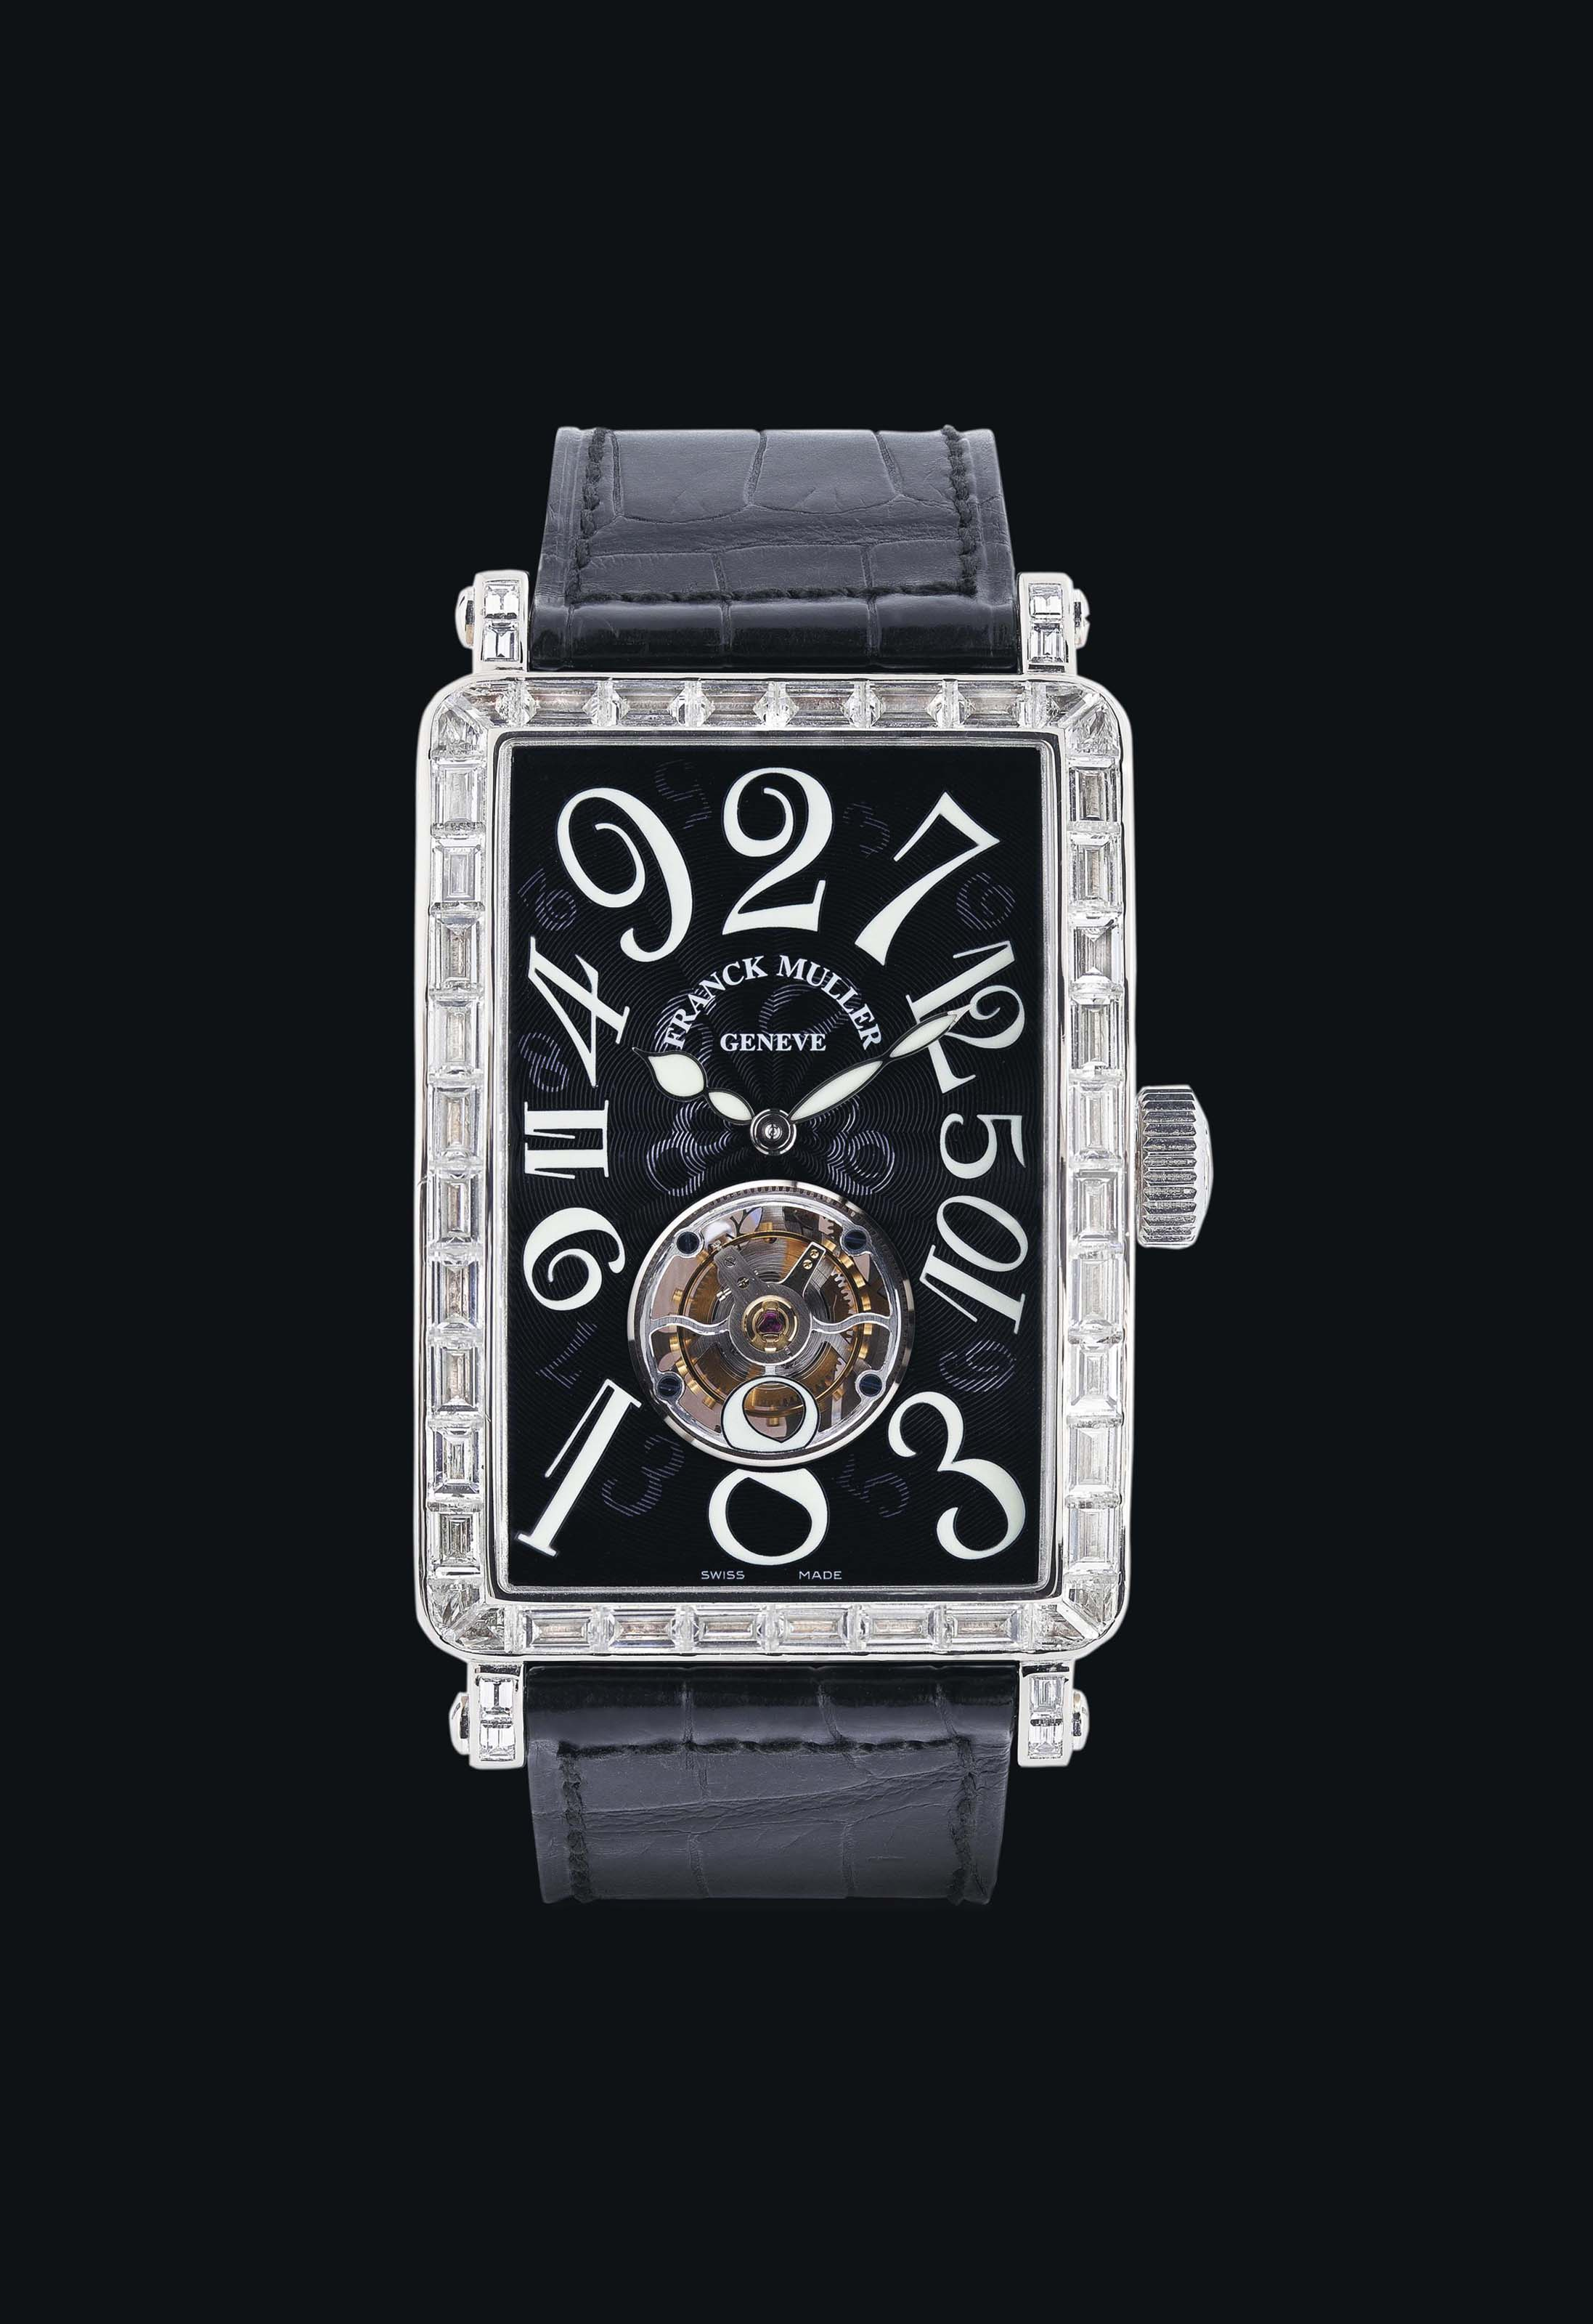 FRANCK MULLER. A VERY FINE AND